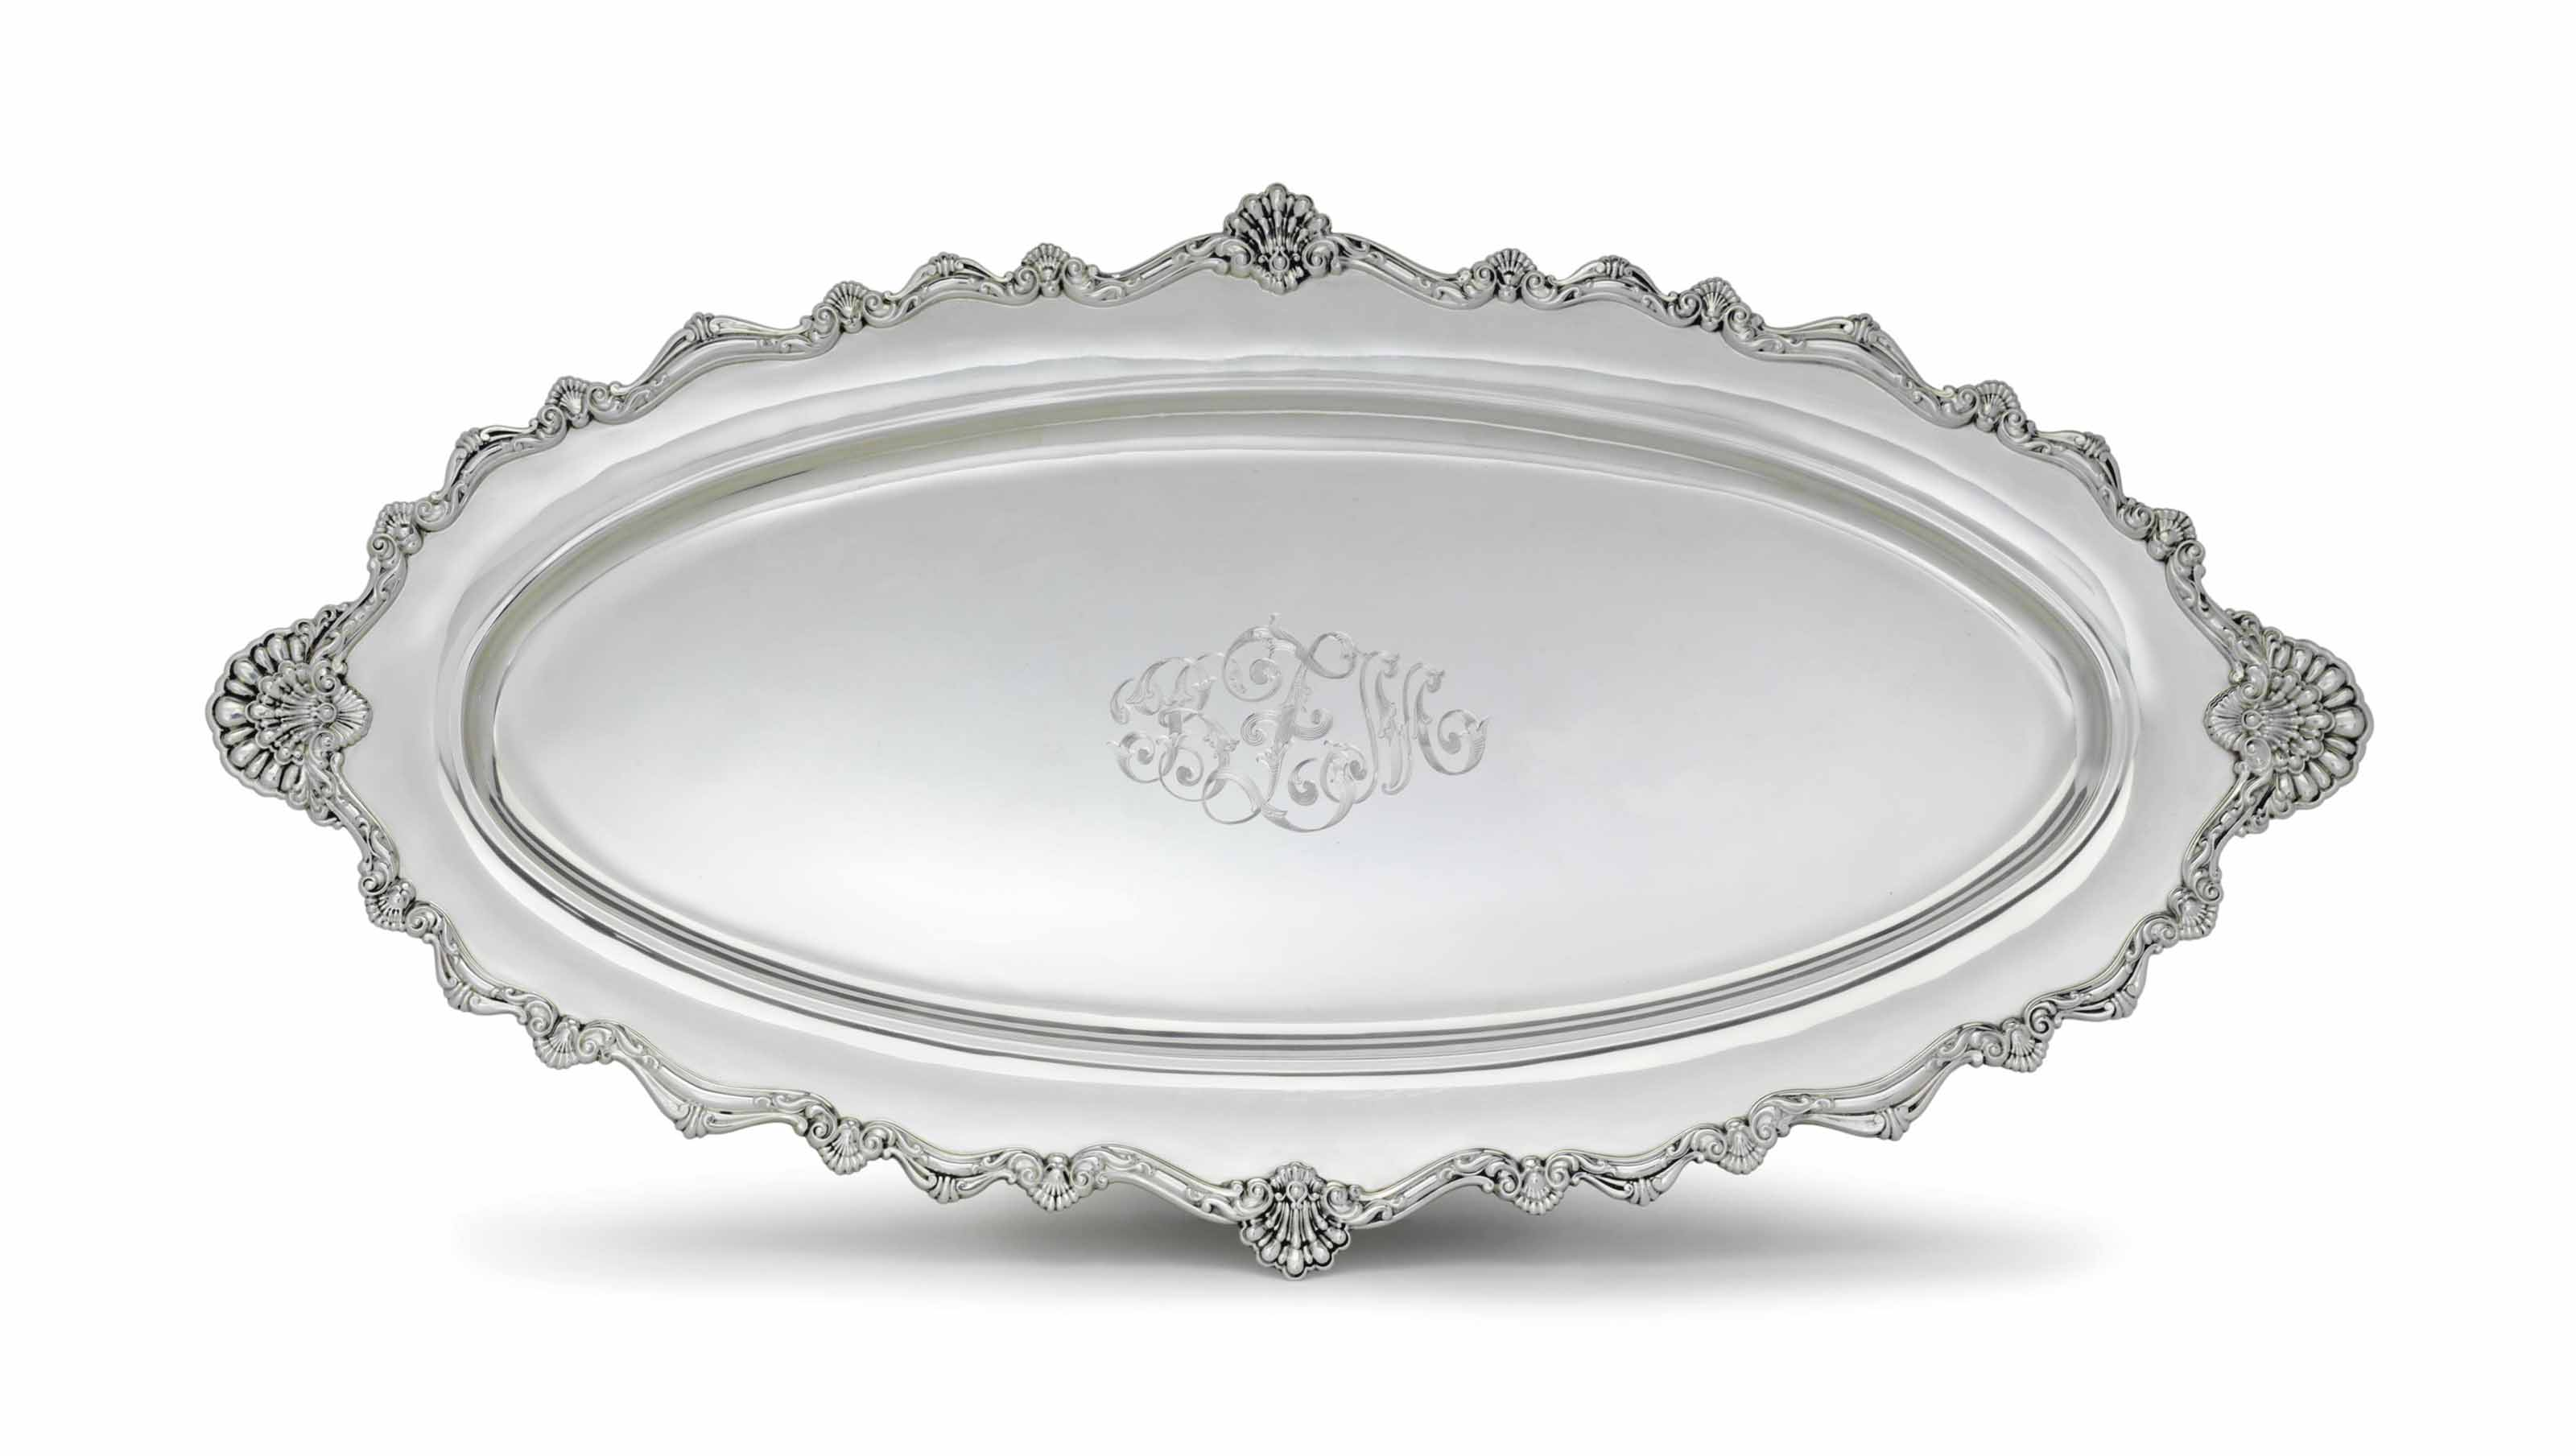 A SILVER OVAL FISH PLATTER